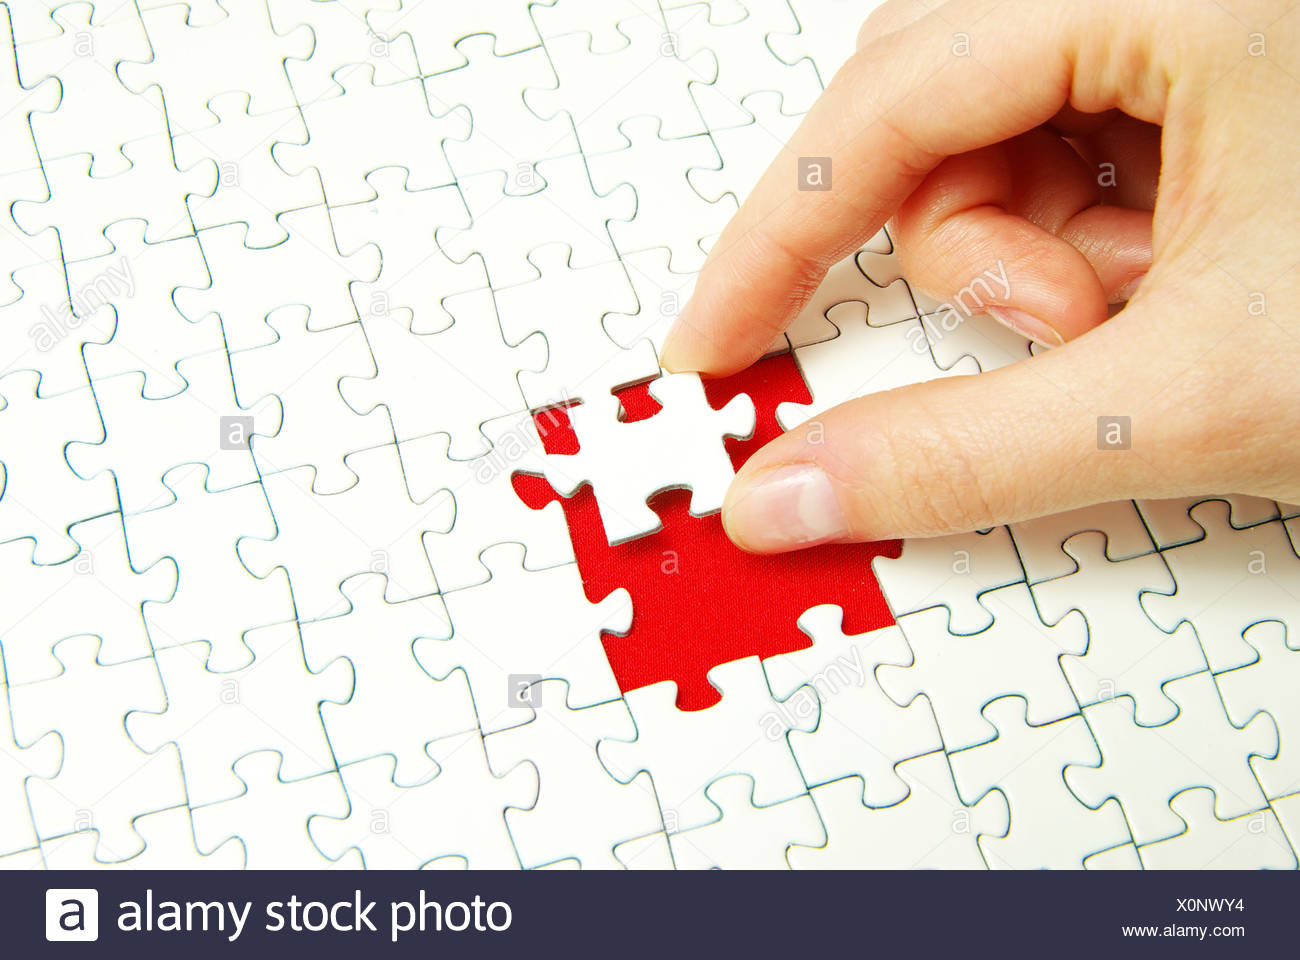 puzzle - Stock Image